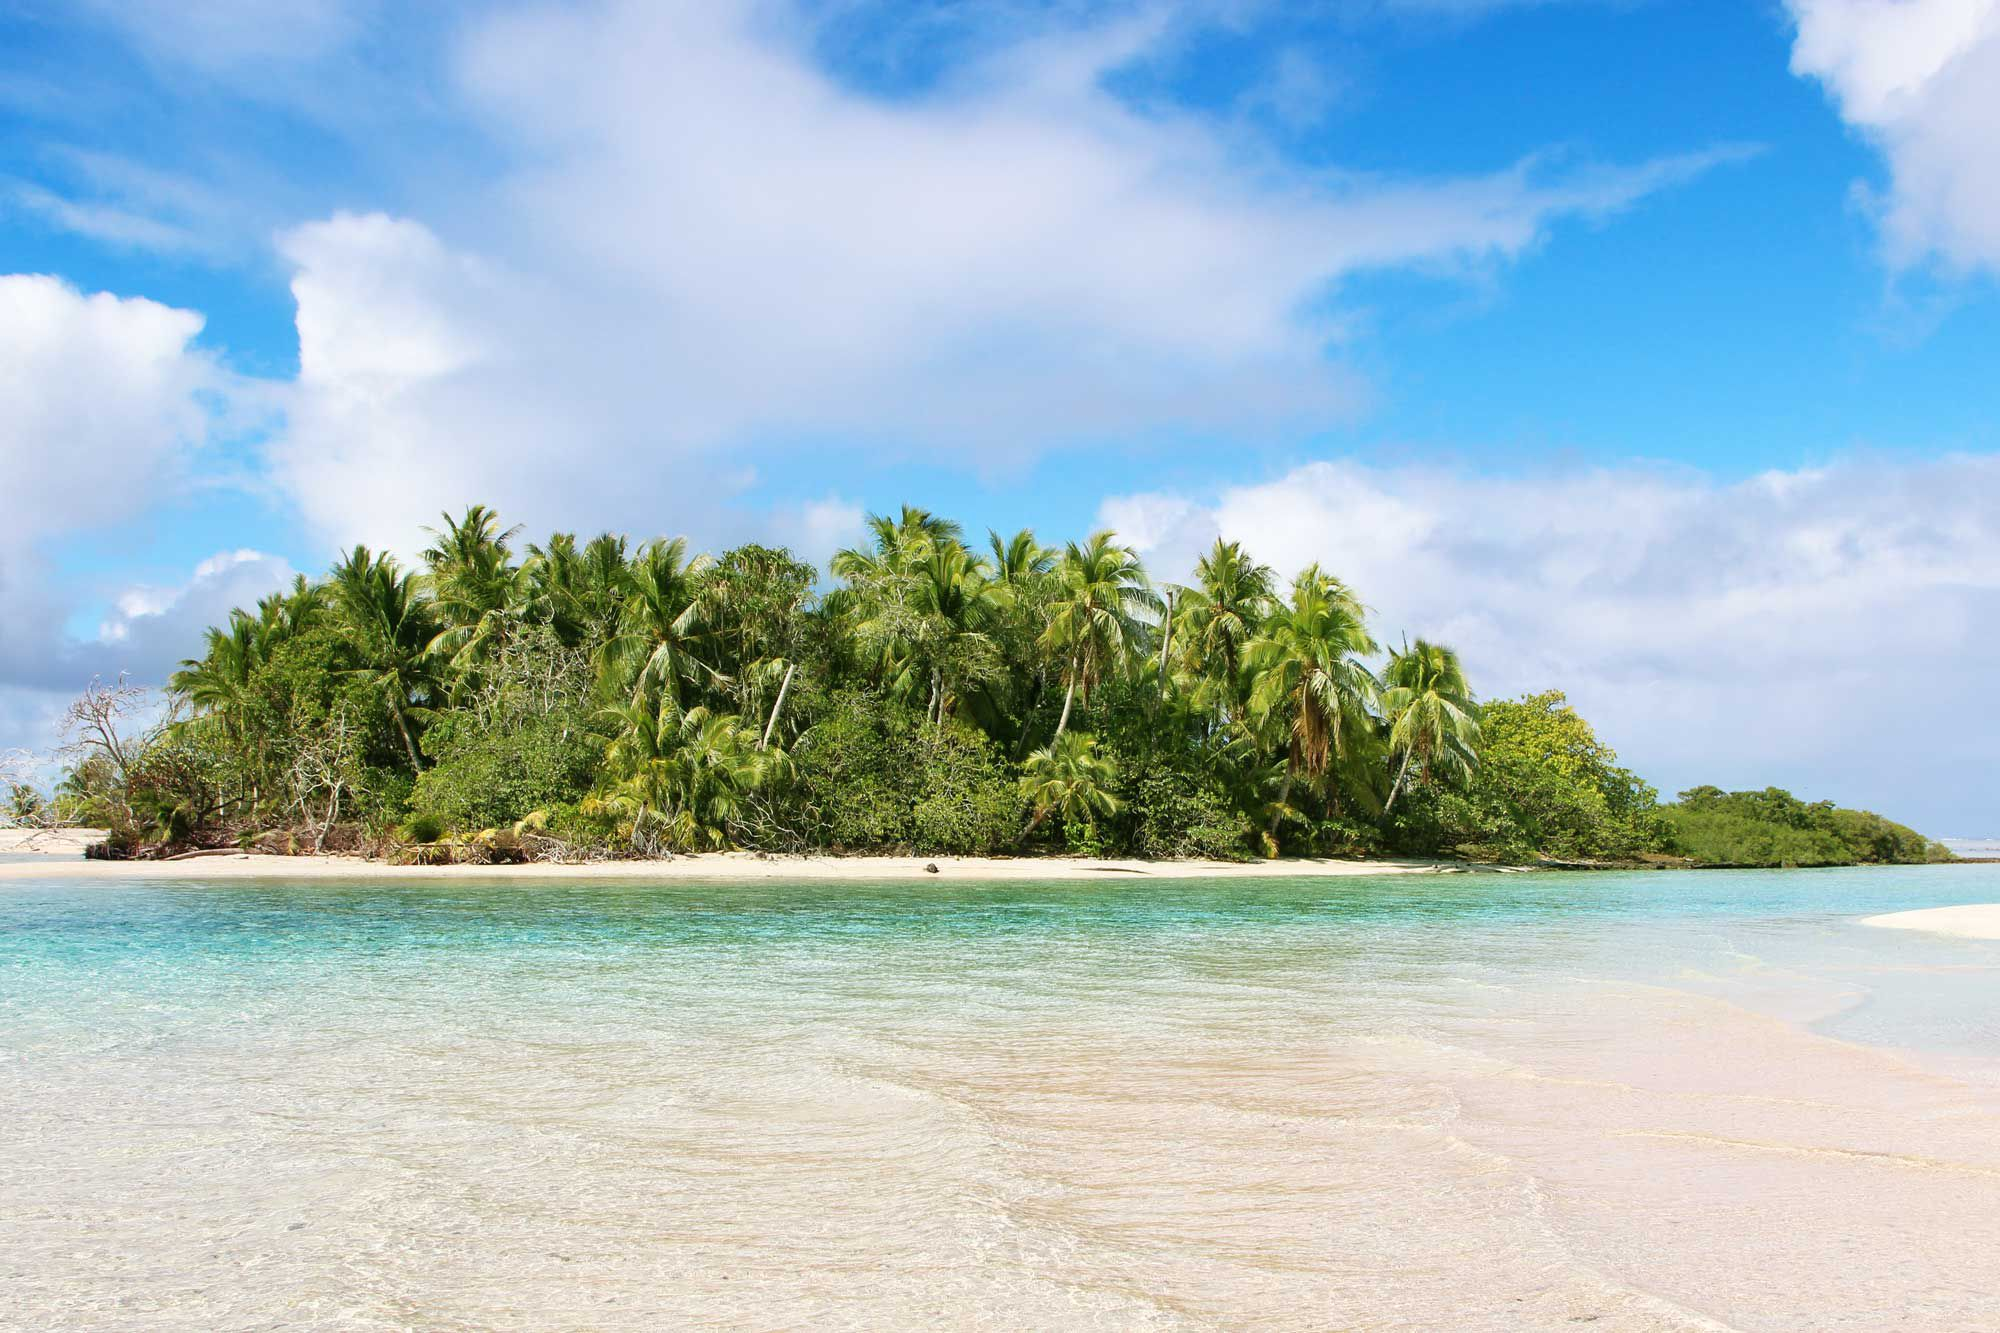 Private Islands for Sale Under $500K   Islands